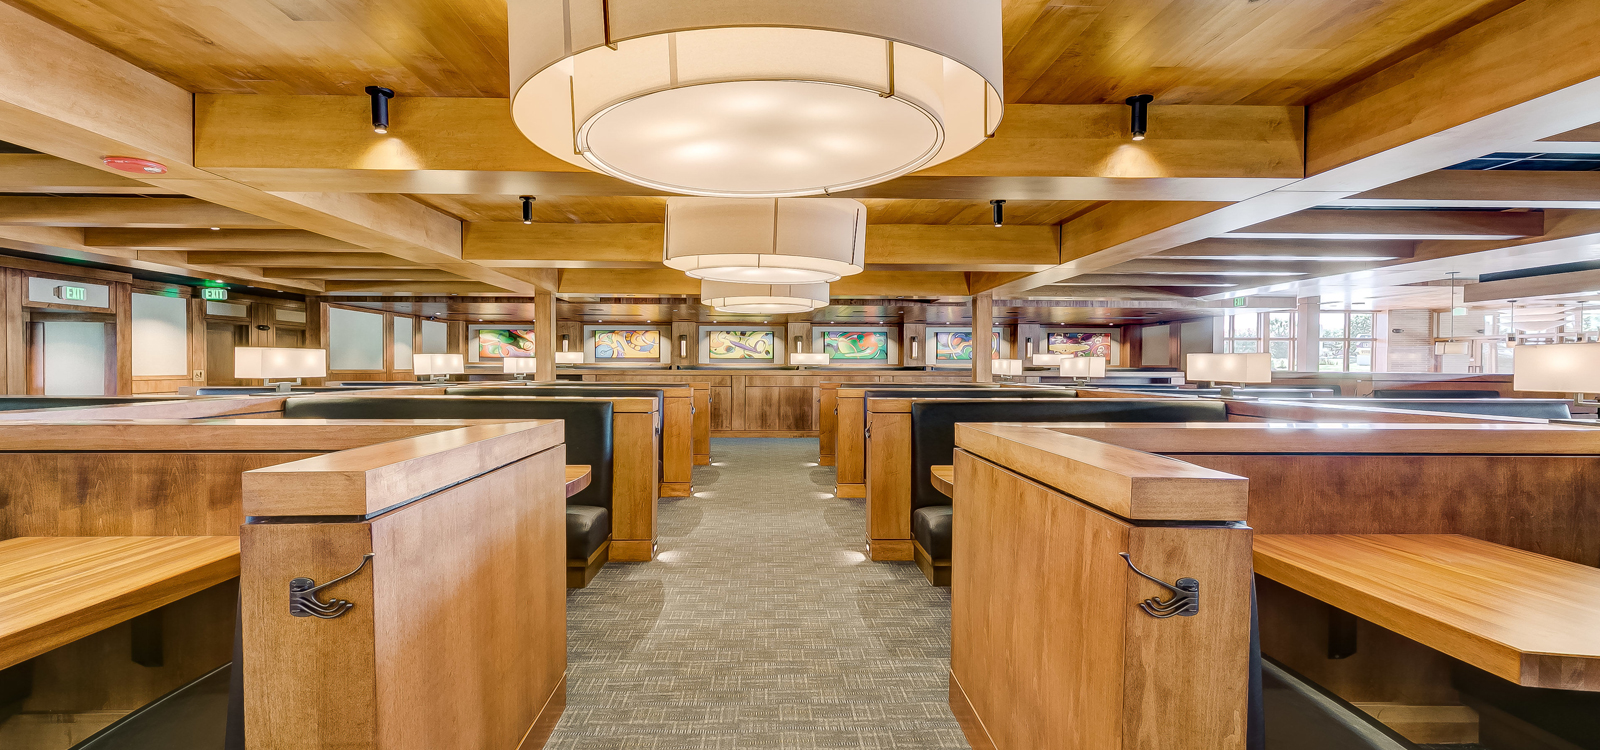 Copper Canyon Grill, Arundel Mills MD, by UrbanBuilt